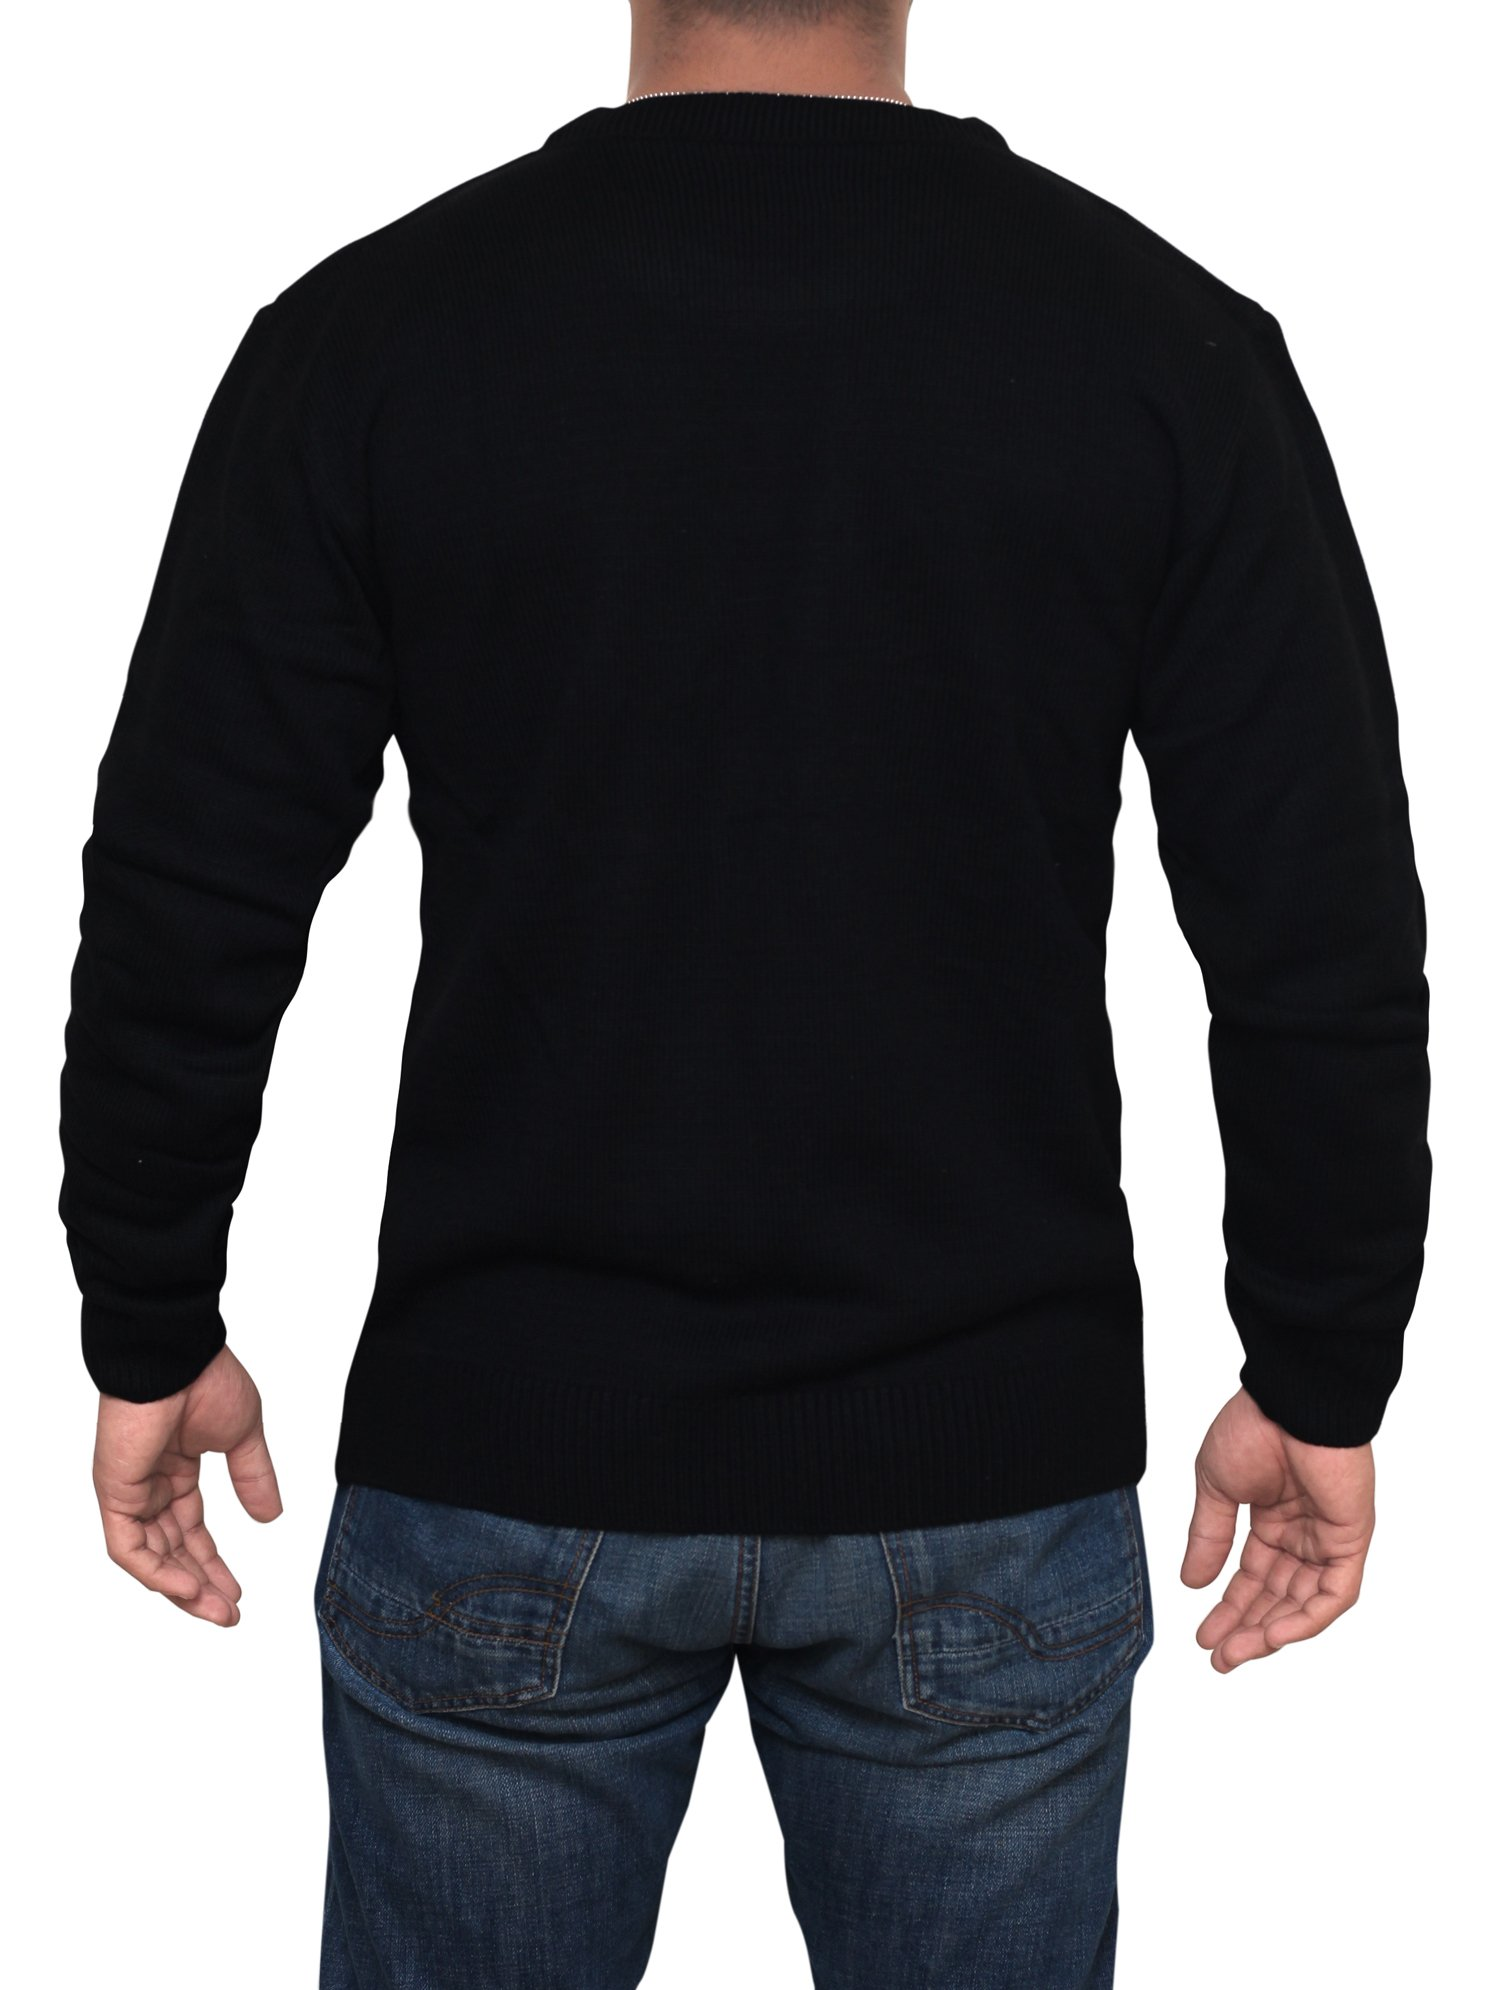 Star Wars Last Jedi Sweater - Star Wars Holiday Sweater by Miracle (Black, Large) by Miracle(Tm) (Image #4)